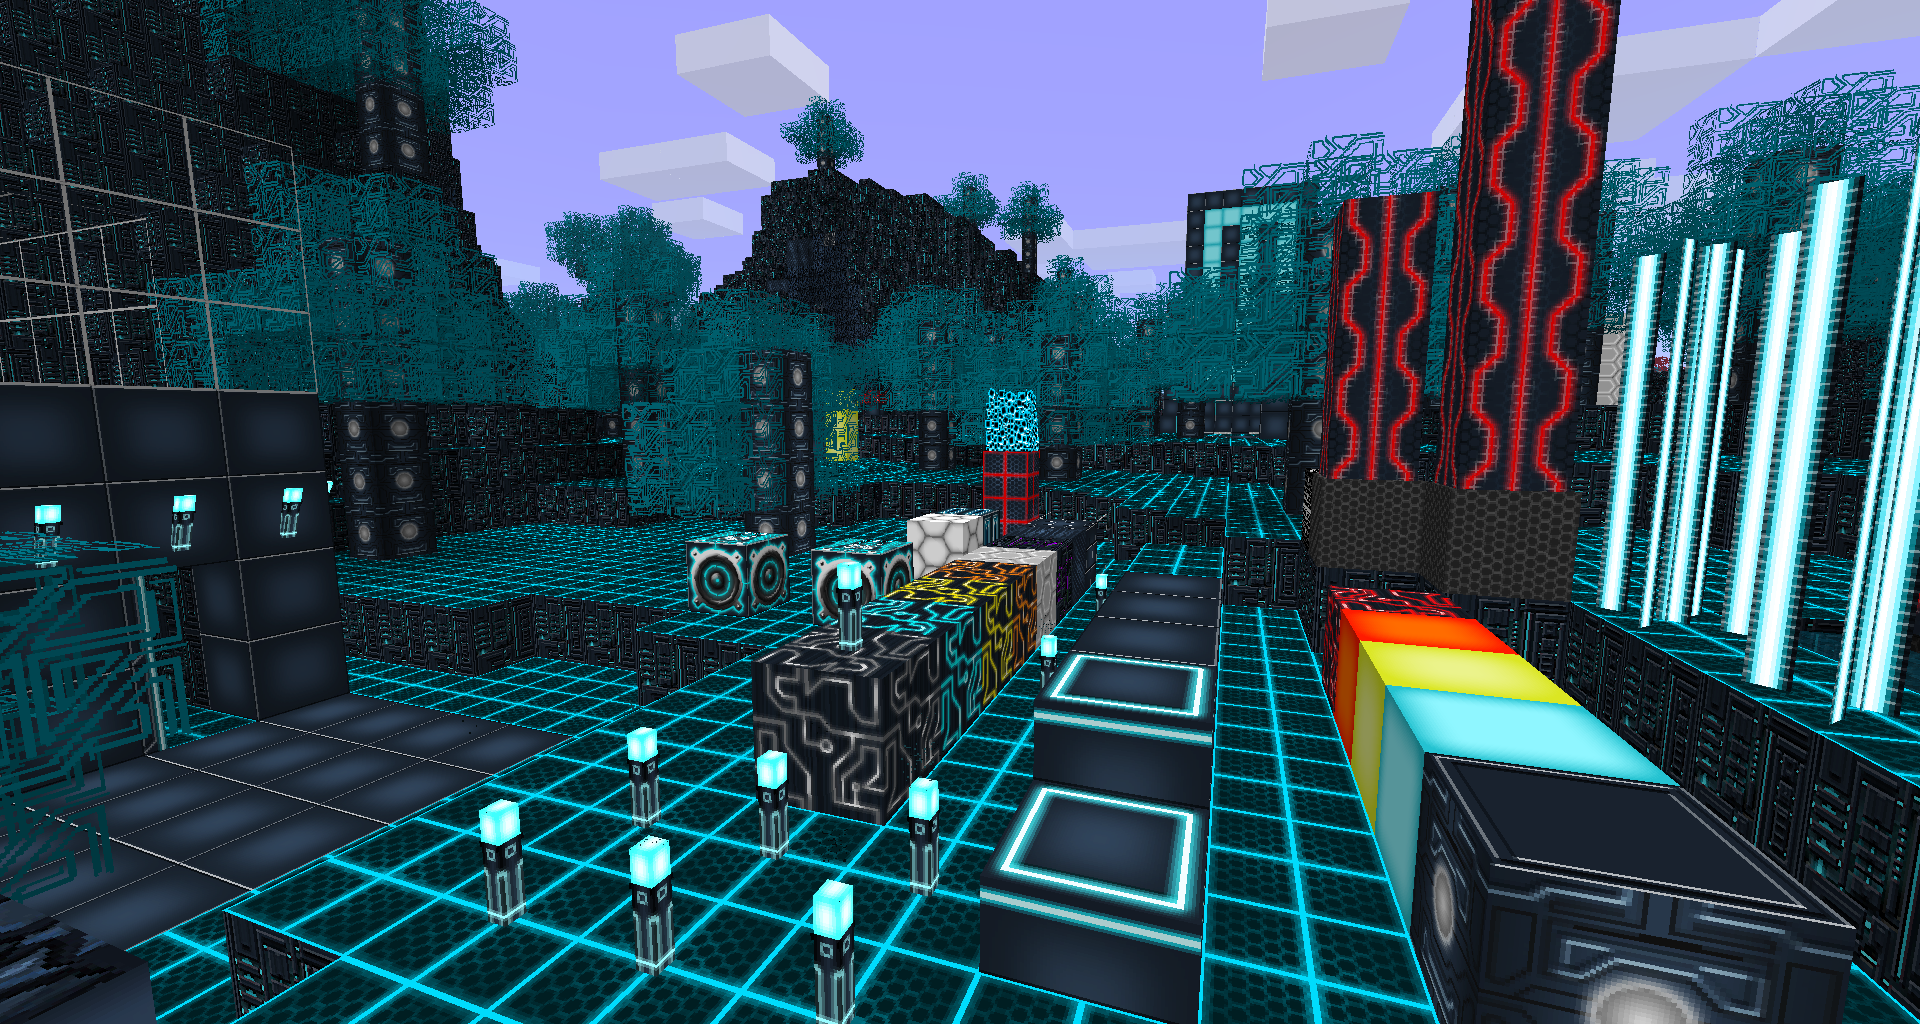 Tron-themed texture pack - GameReplays.org